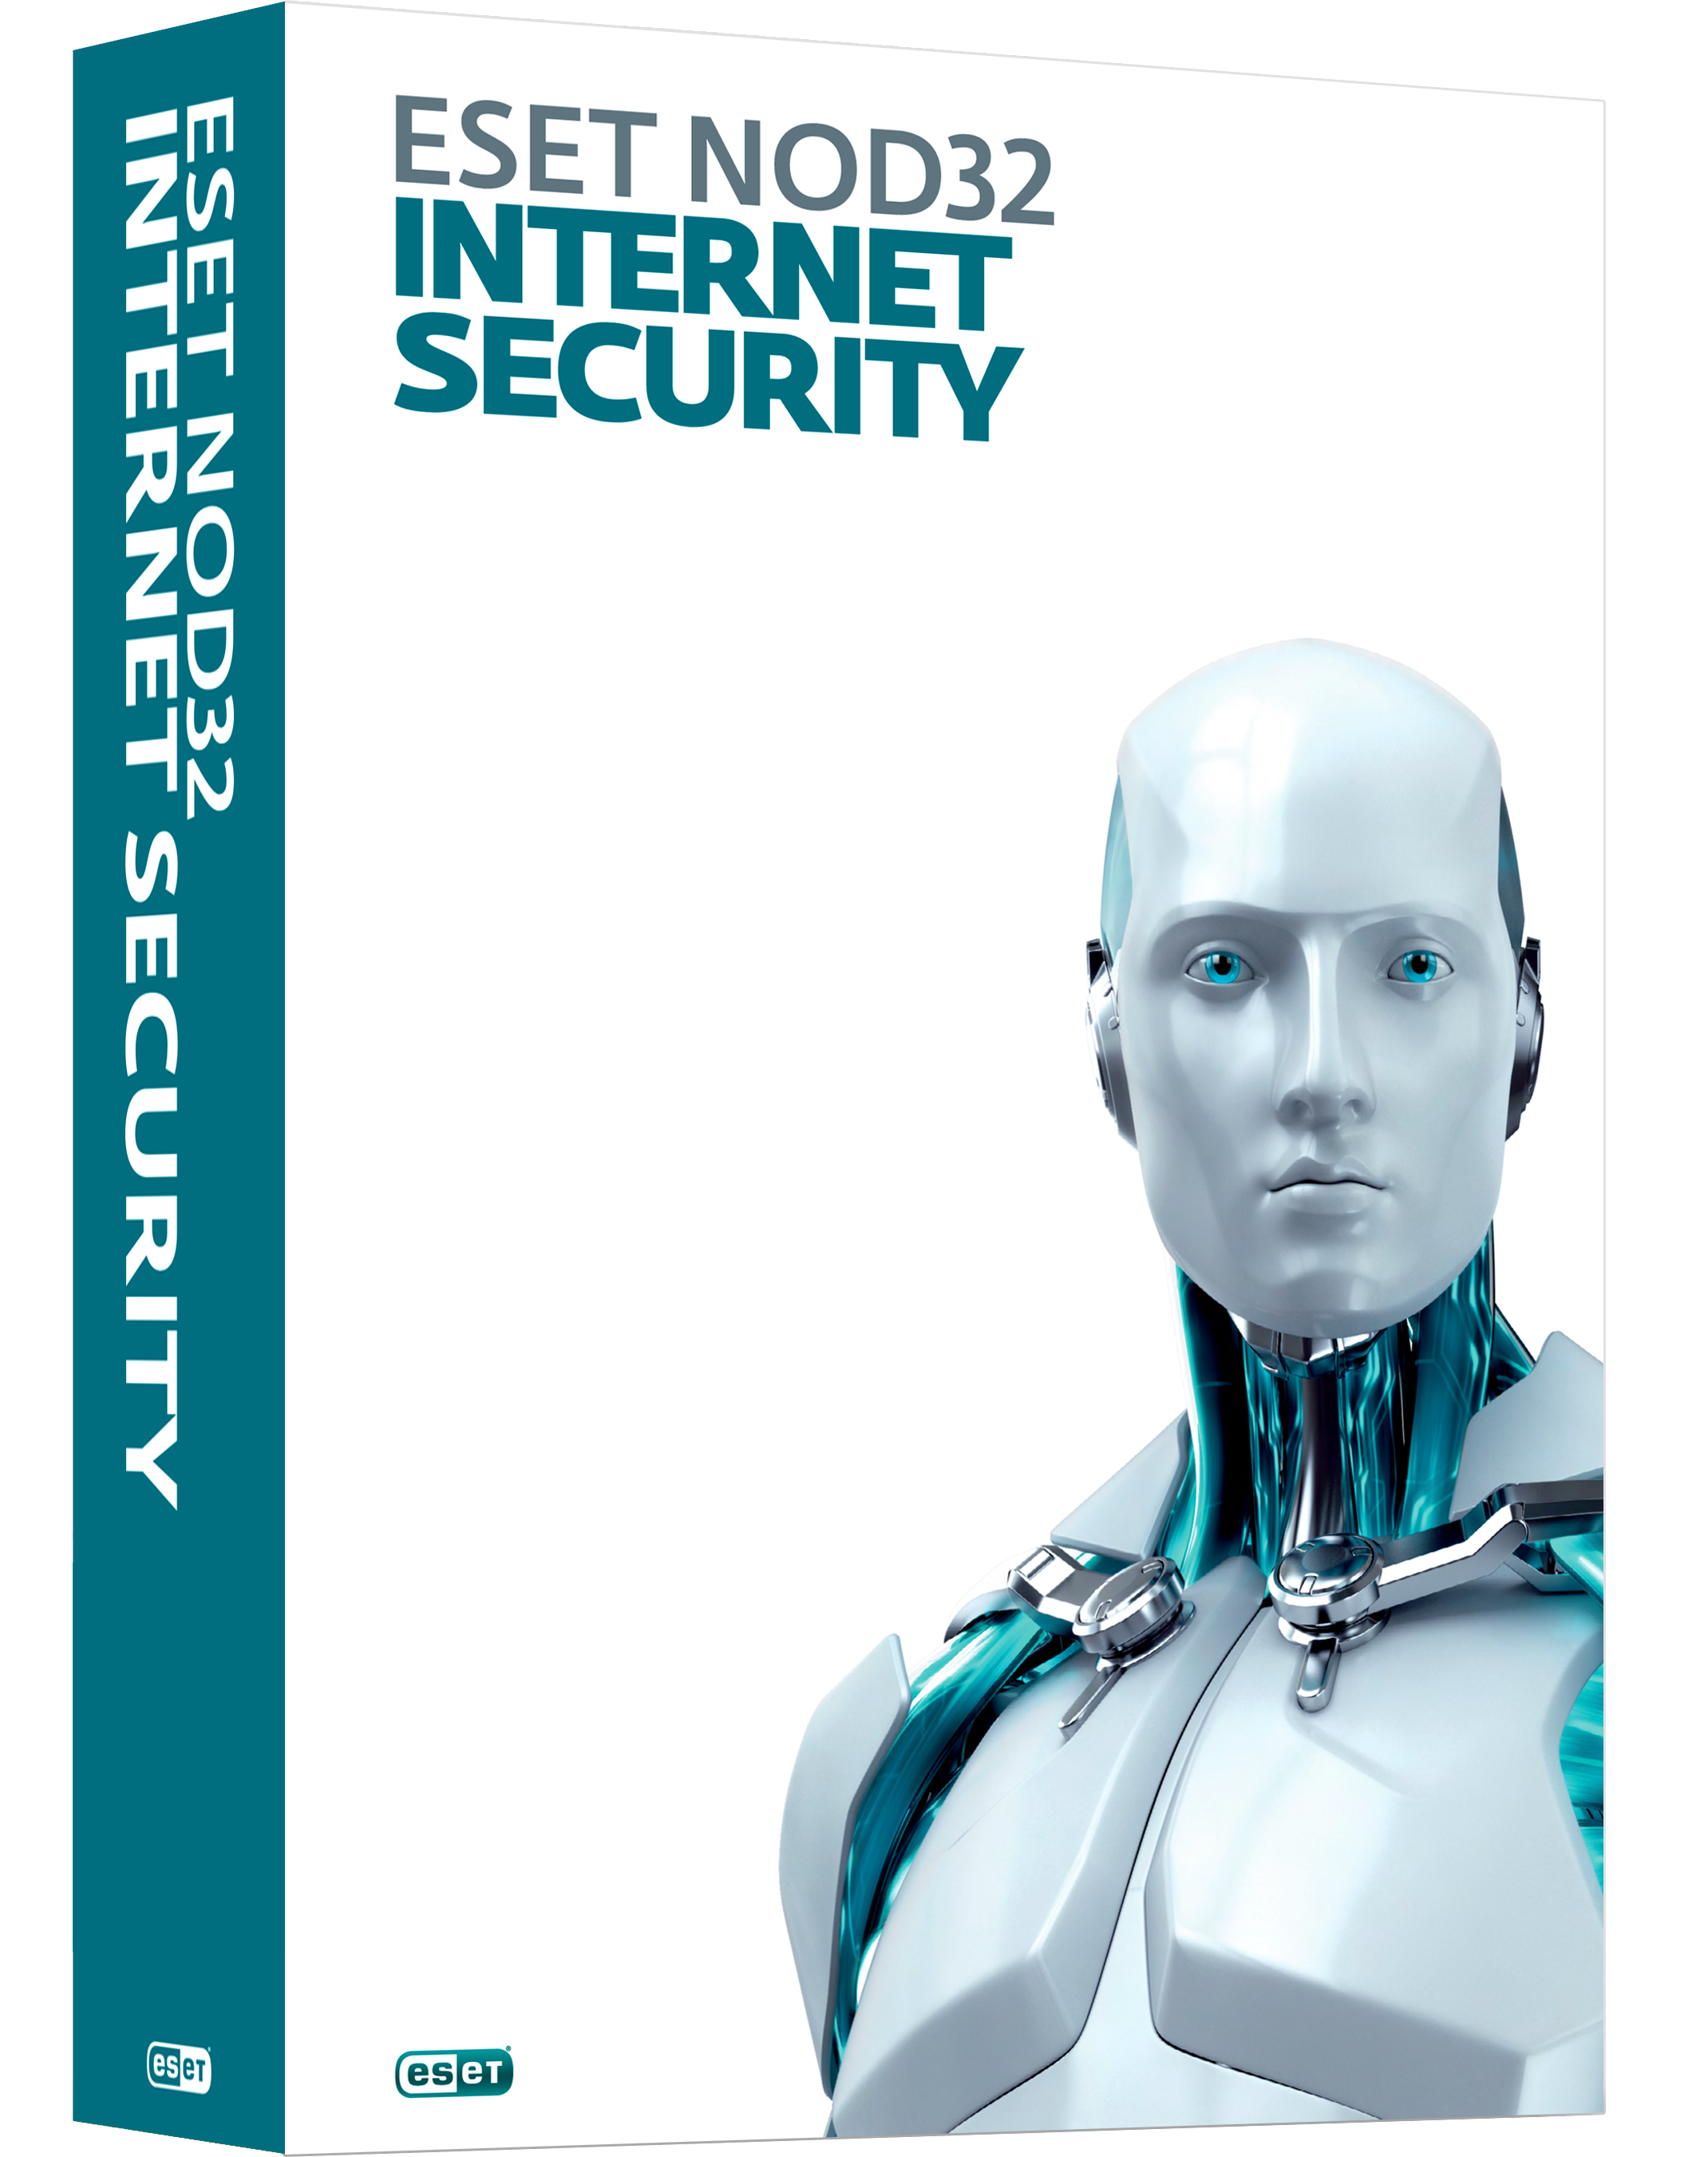 ESET NOD32 INTERNET SECURITY 2 years 1 PC WINDOWS